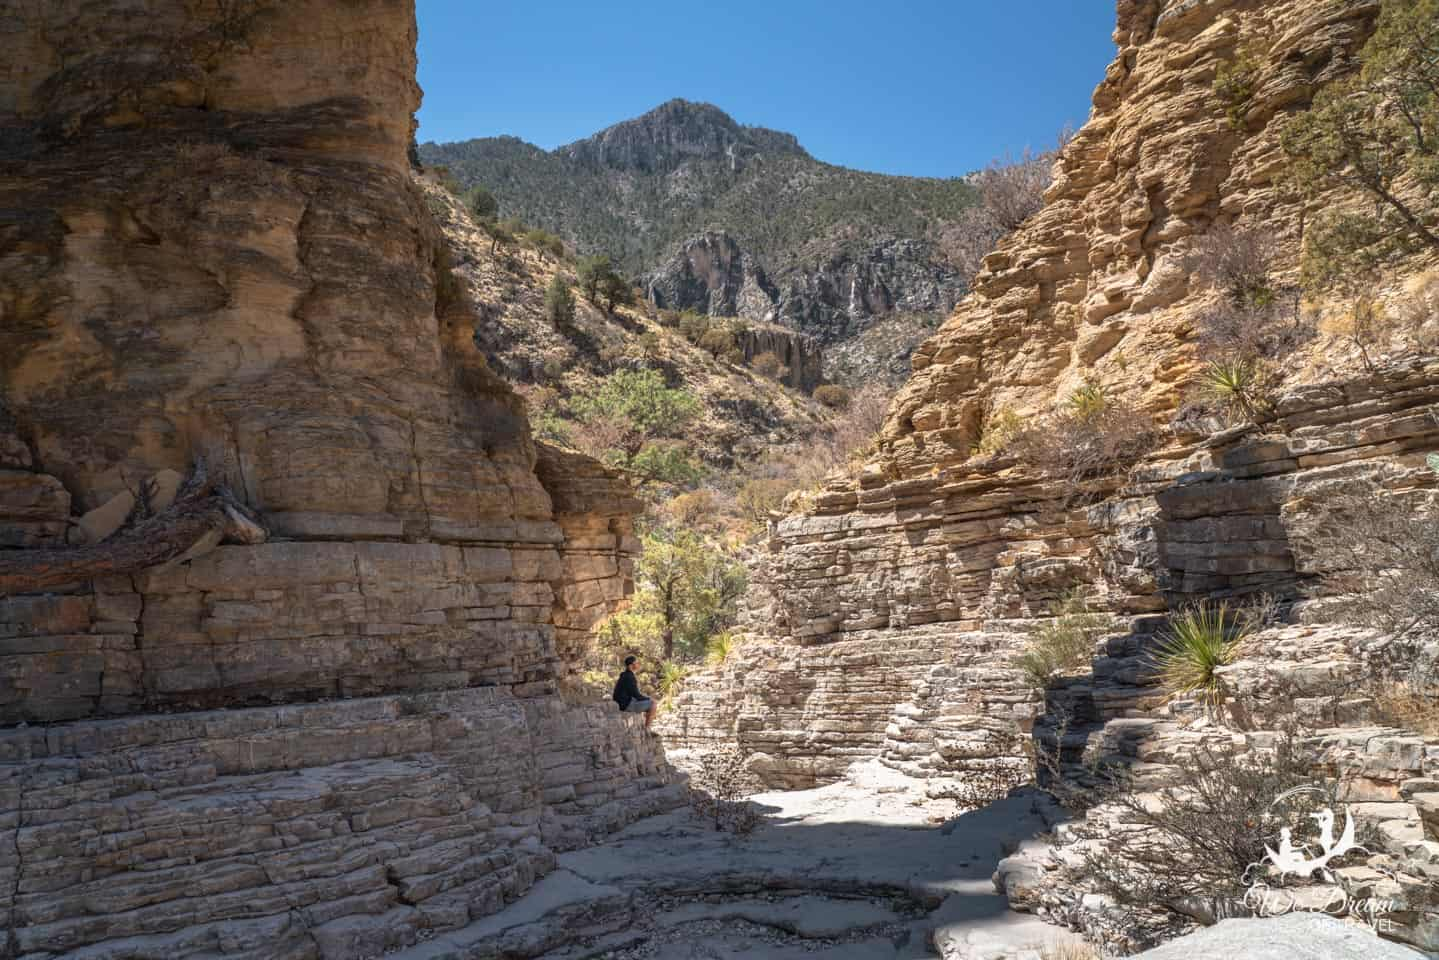 Devil's Hall is a popular hike from the Pine Springs Trail.